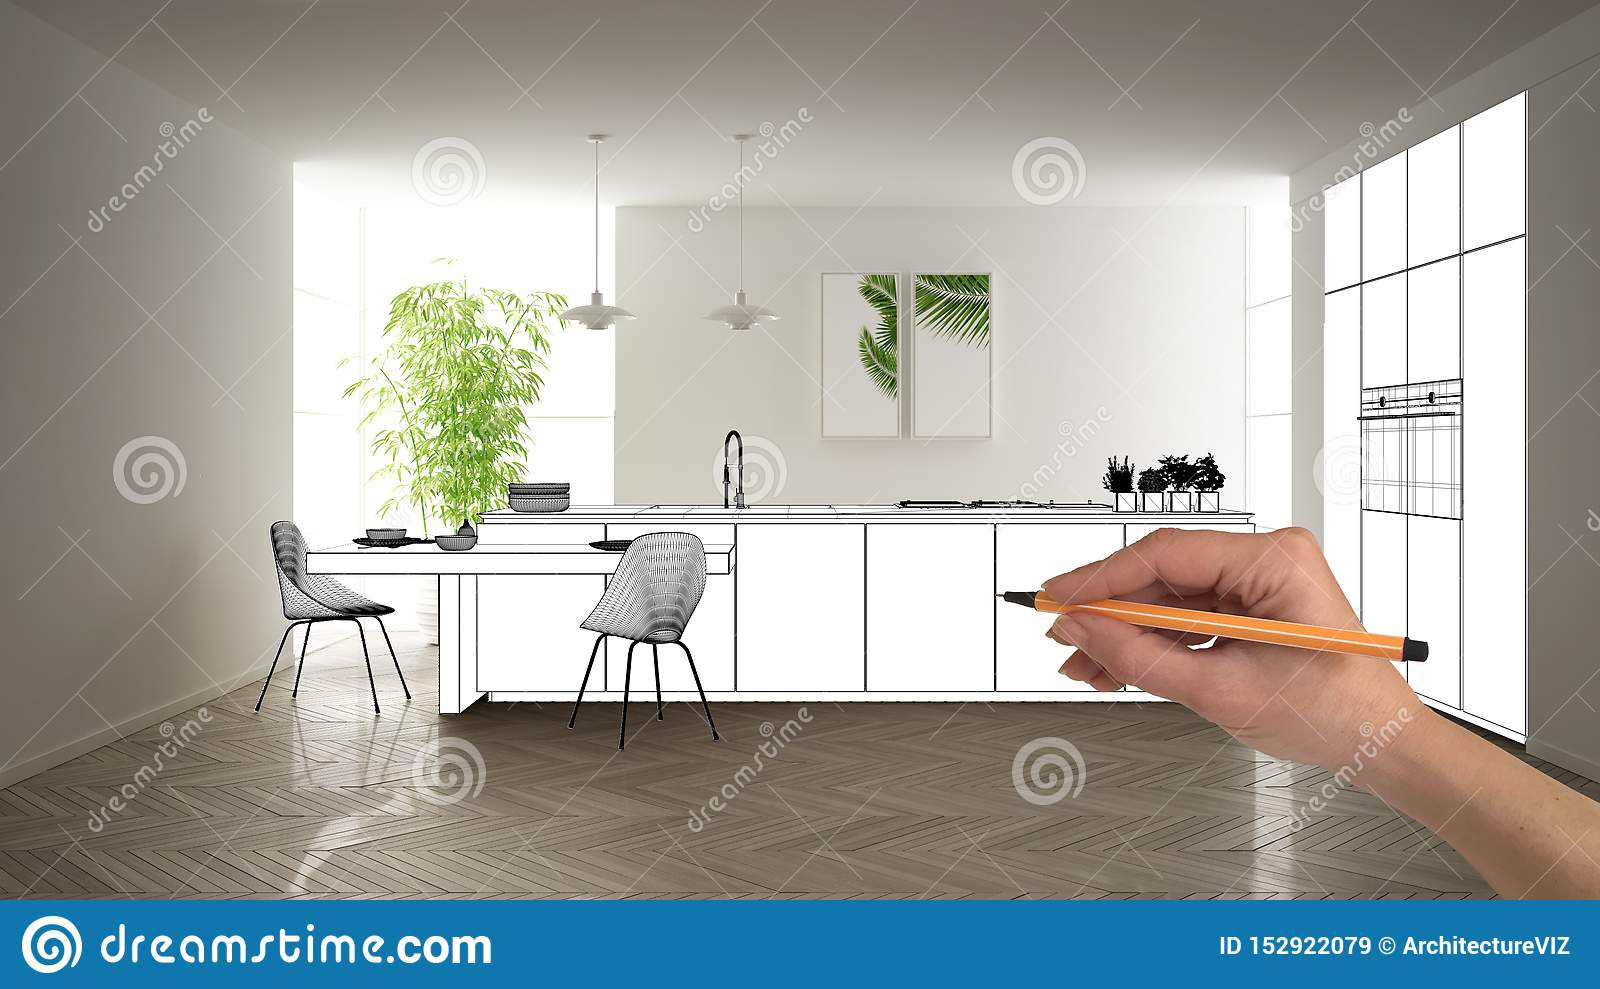 Unfinished Project Under Construction Draft Concept Interior Design Sketch Hand Drawing Blueprint Kitchen Sketch In Real Stock Image Image Of Background House 152922079